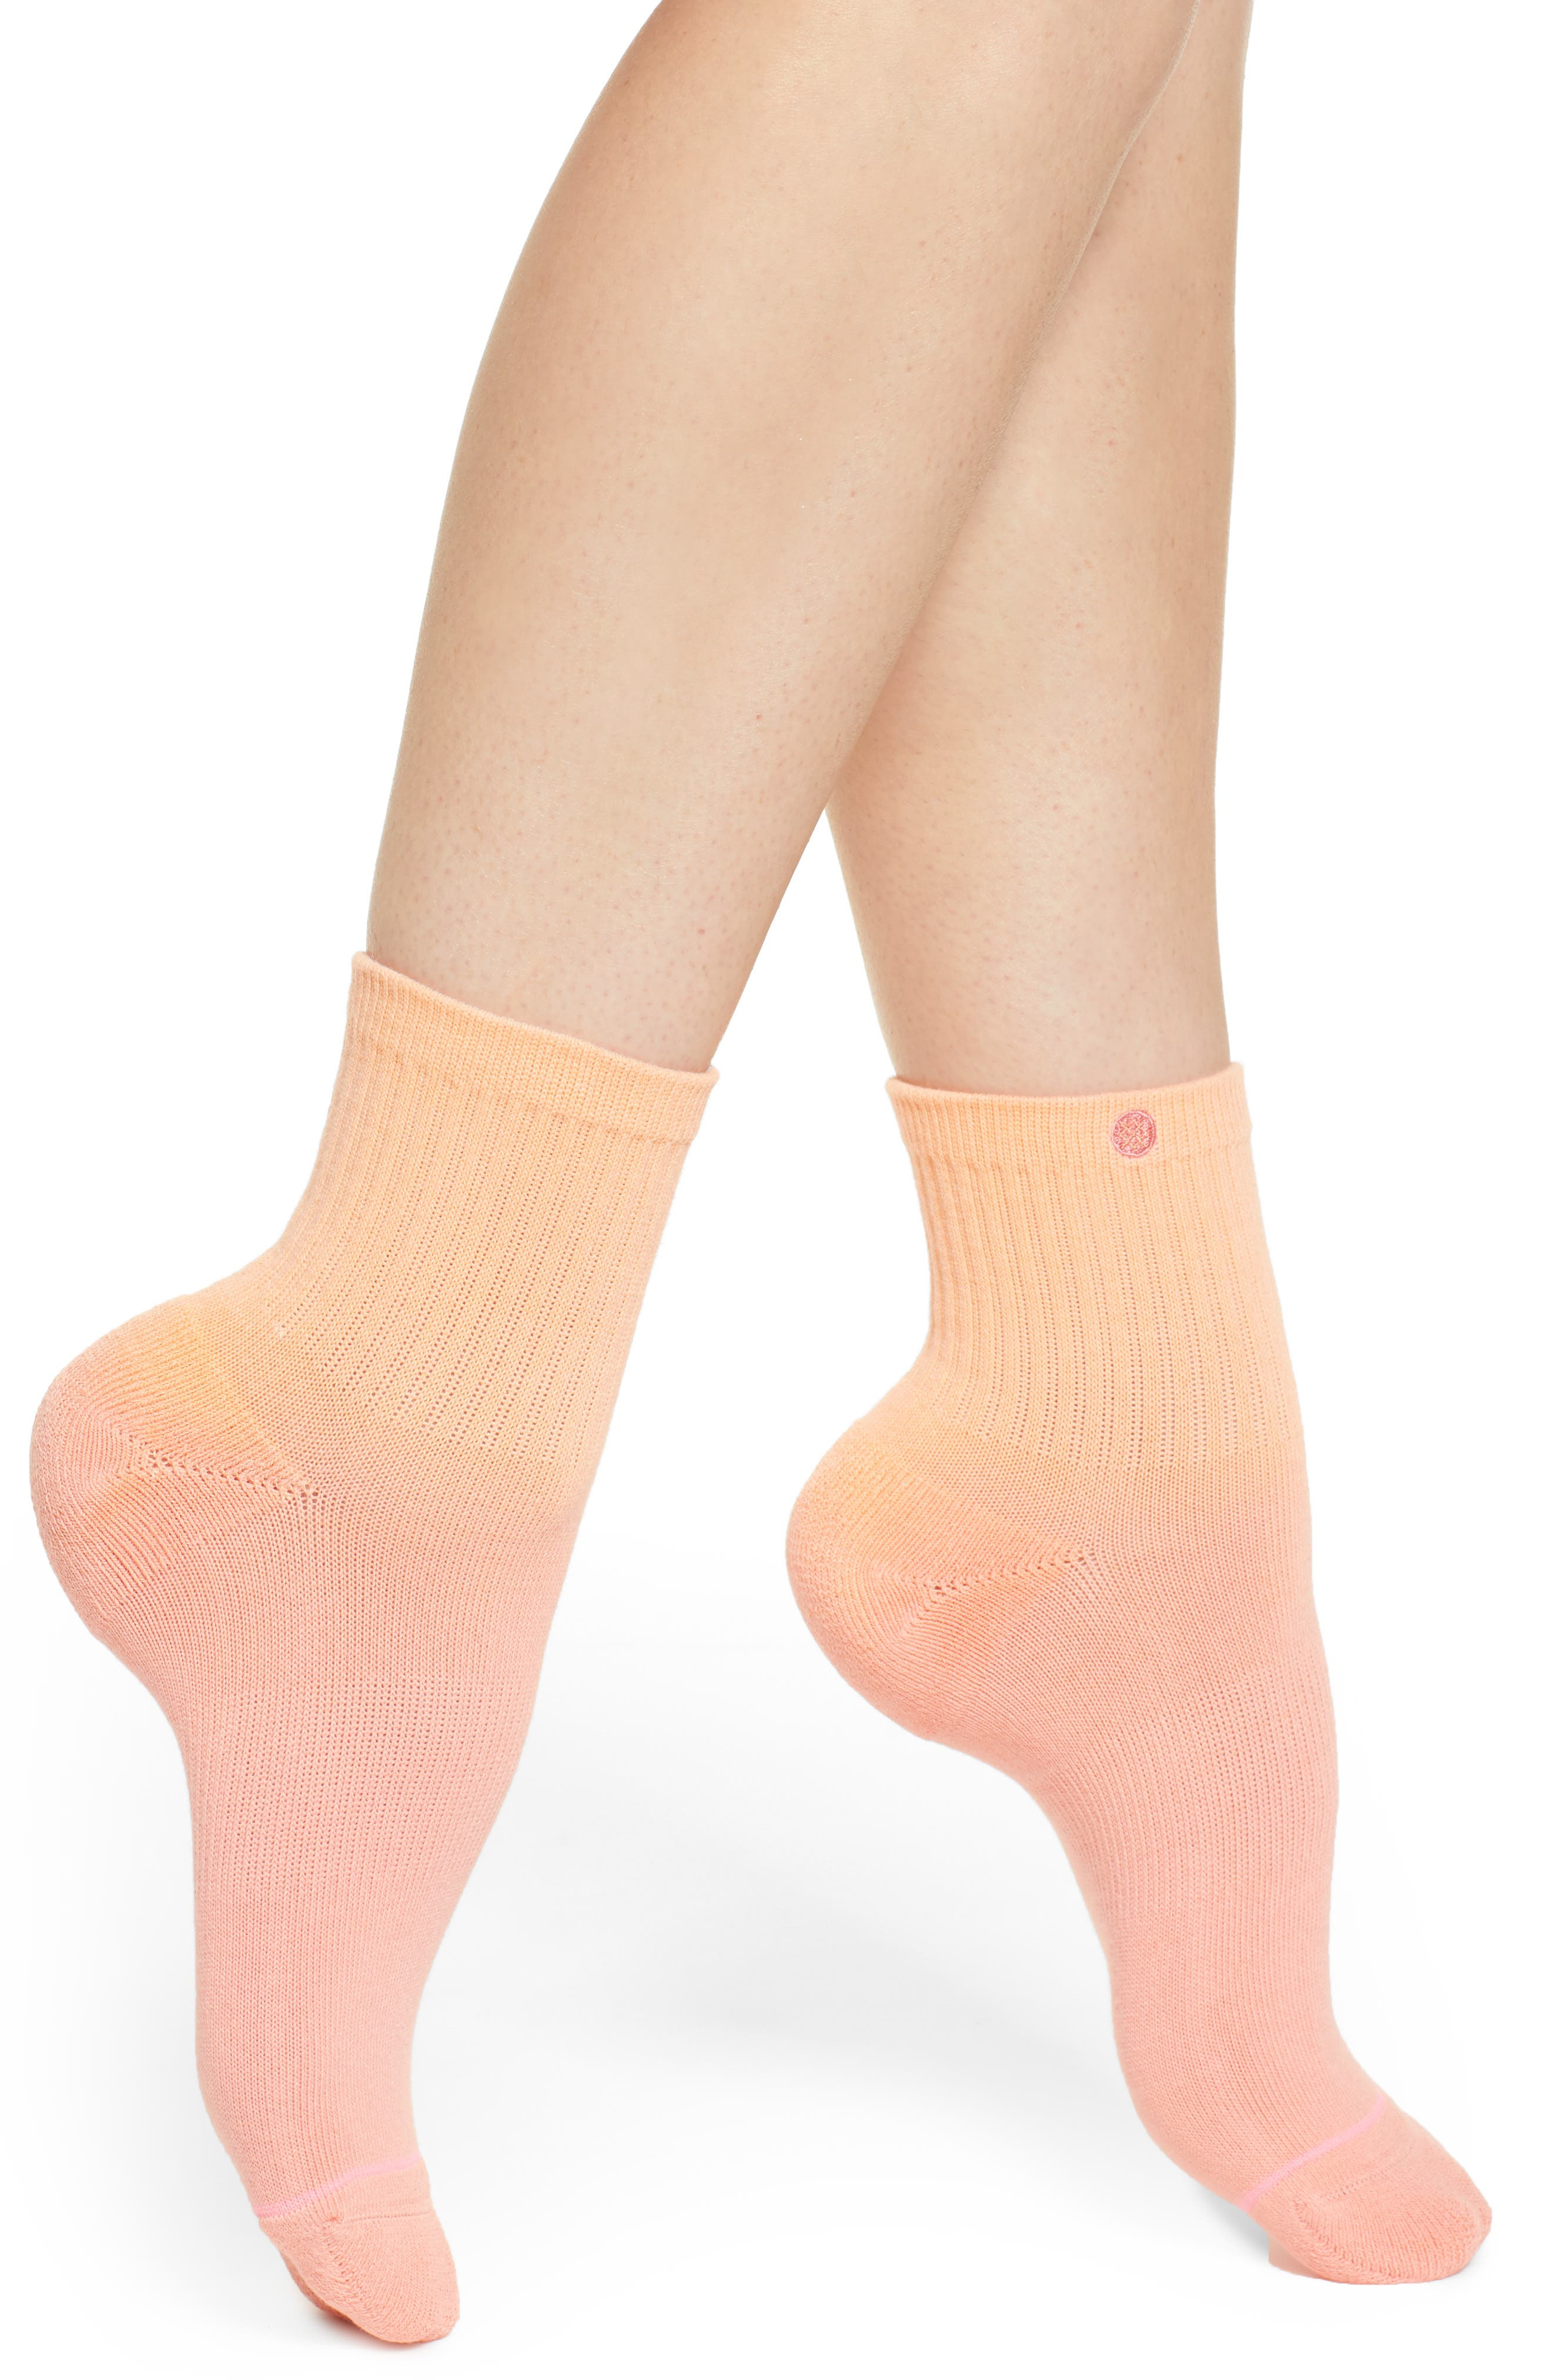 Uncommon Dip Low Rider Socks,                             Main thumbnail 1, color,                             PEACH